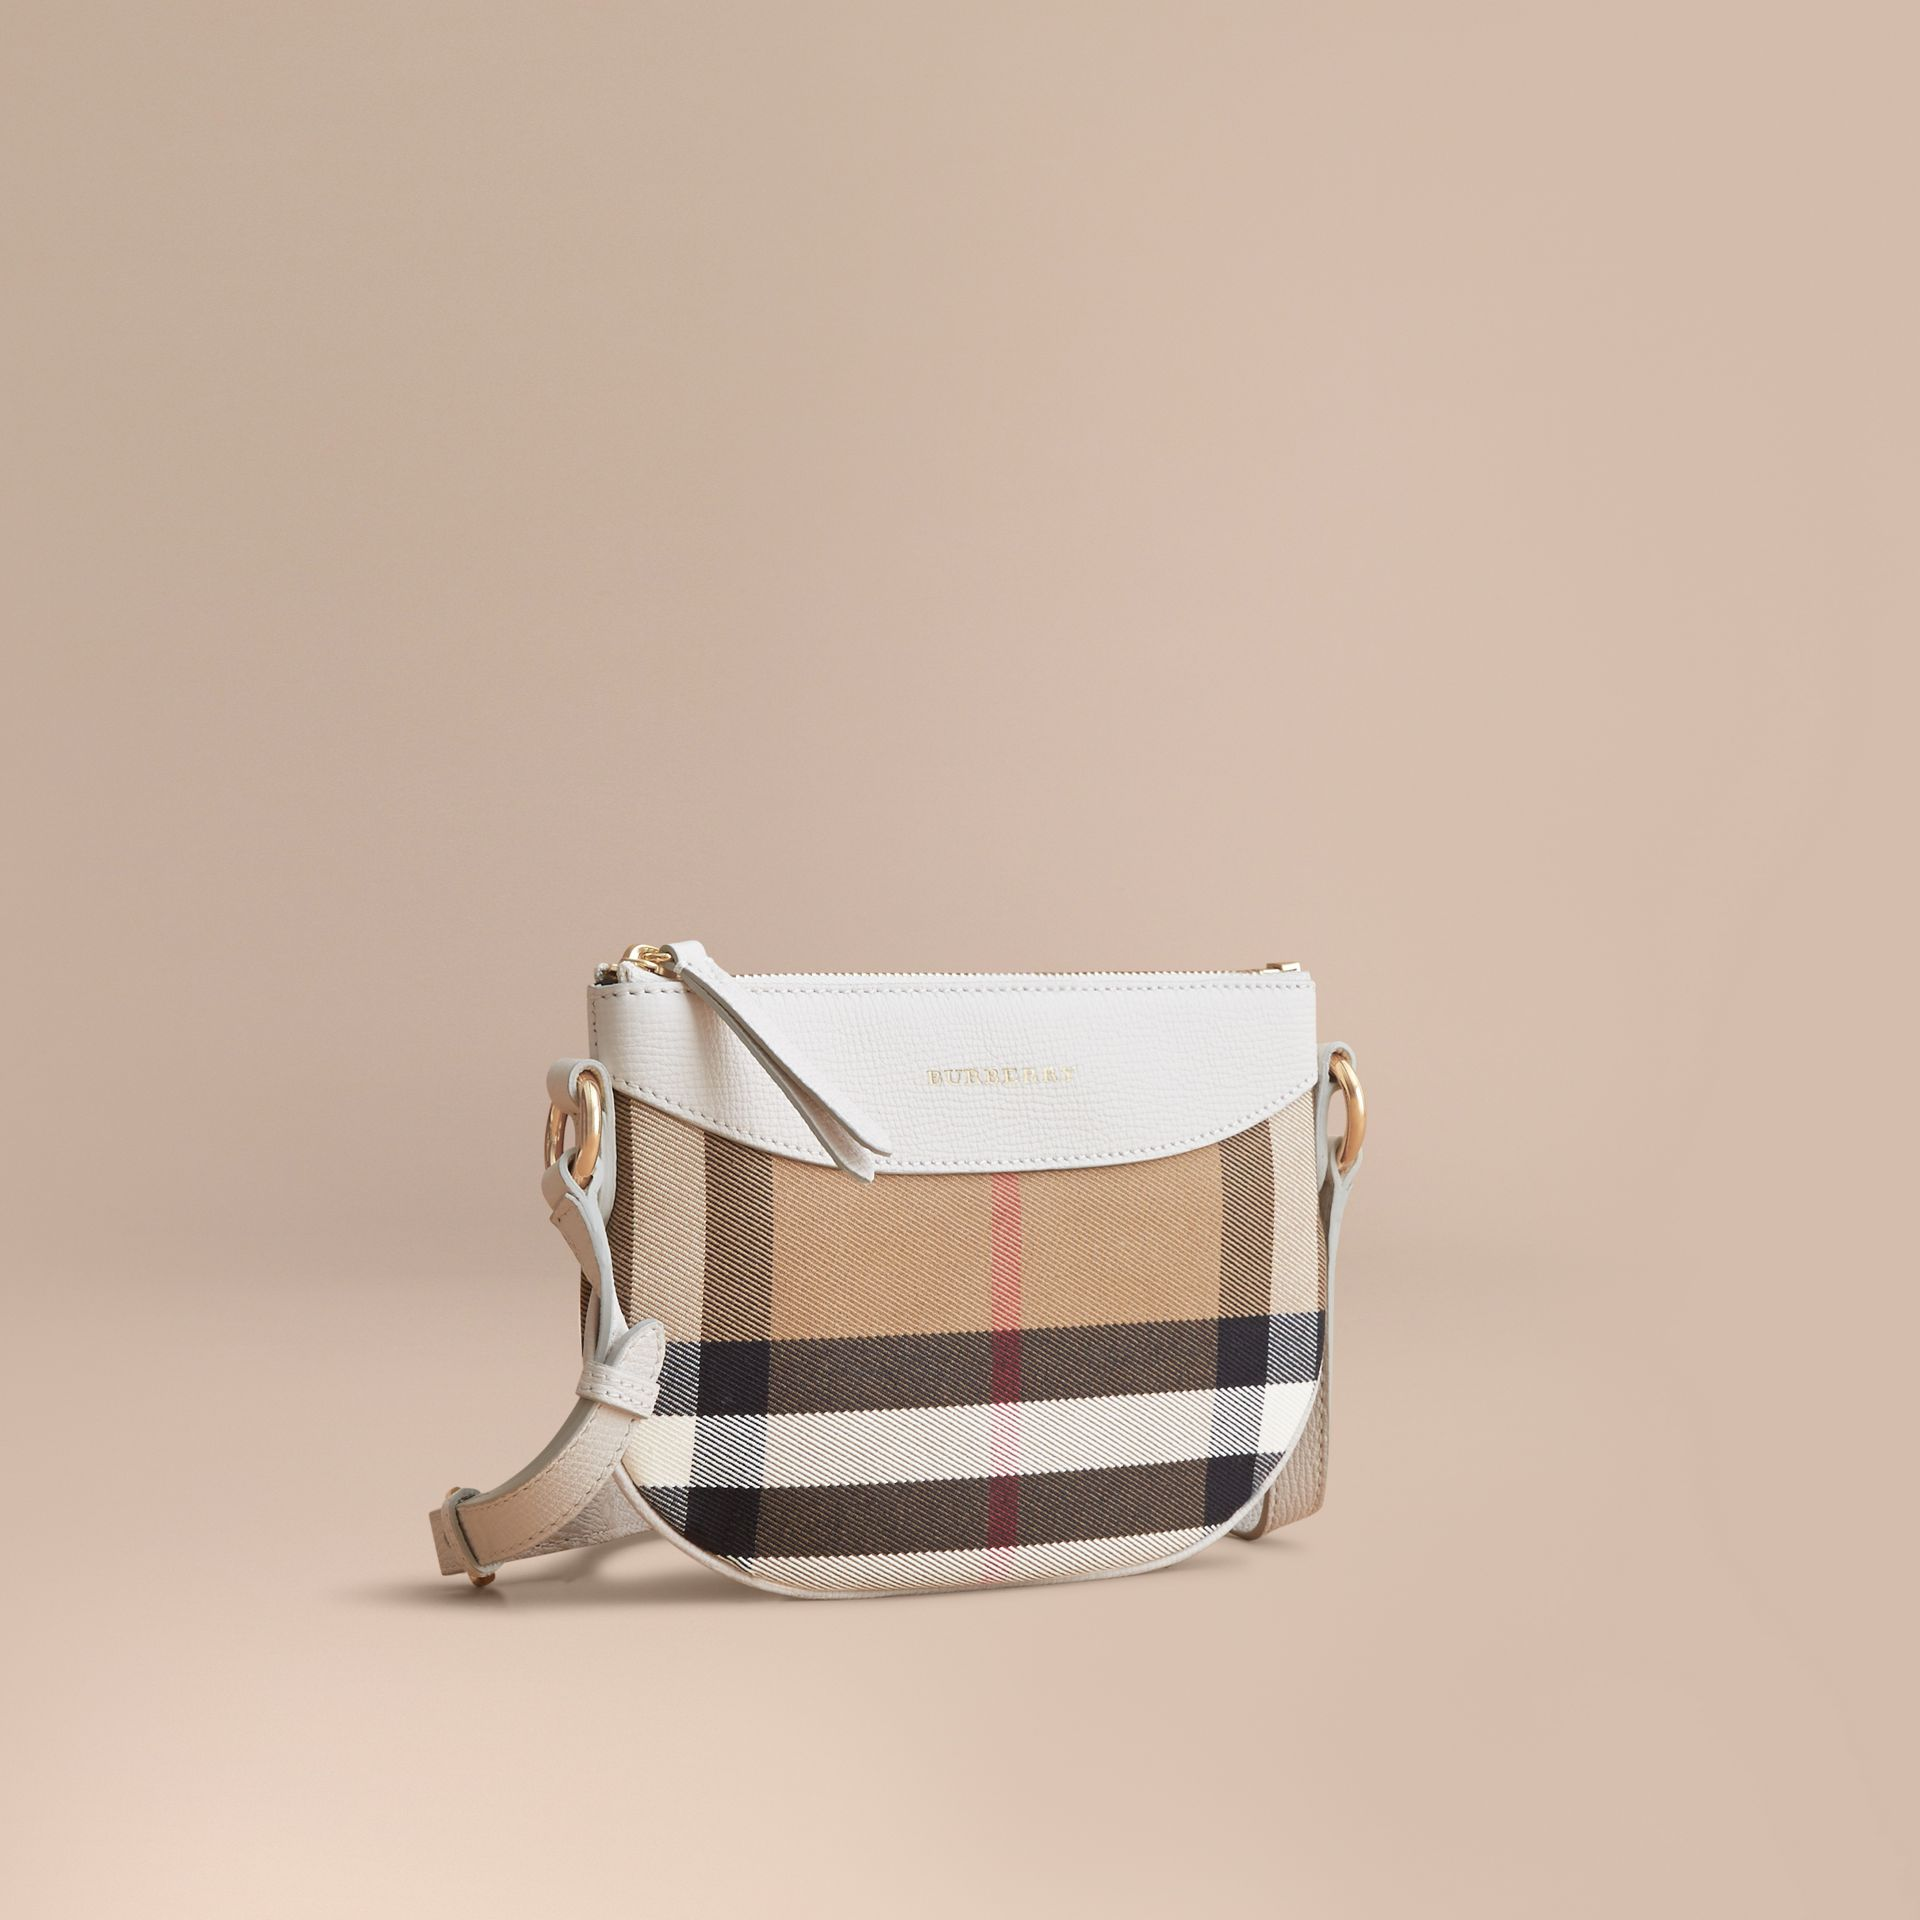 House Check and Leather Crossbody Bag in Natural | Burberry - gallery image 1